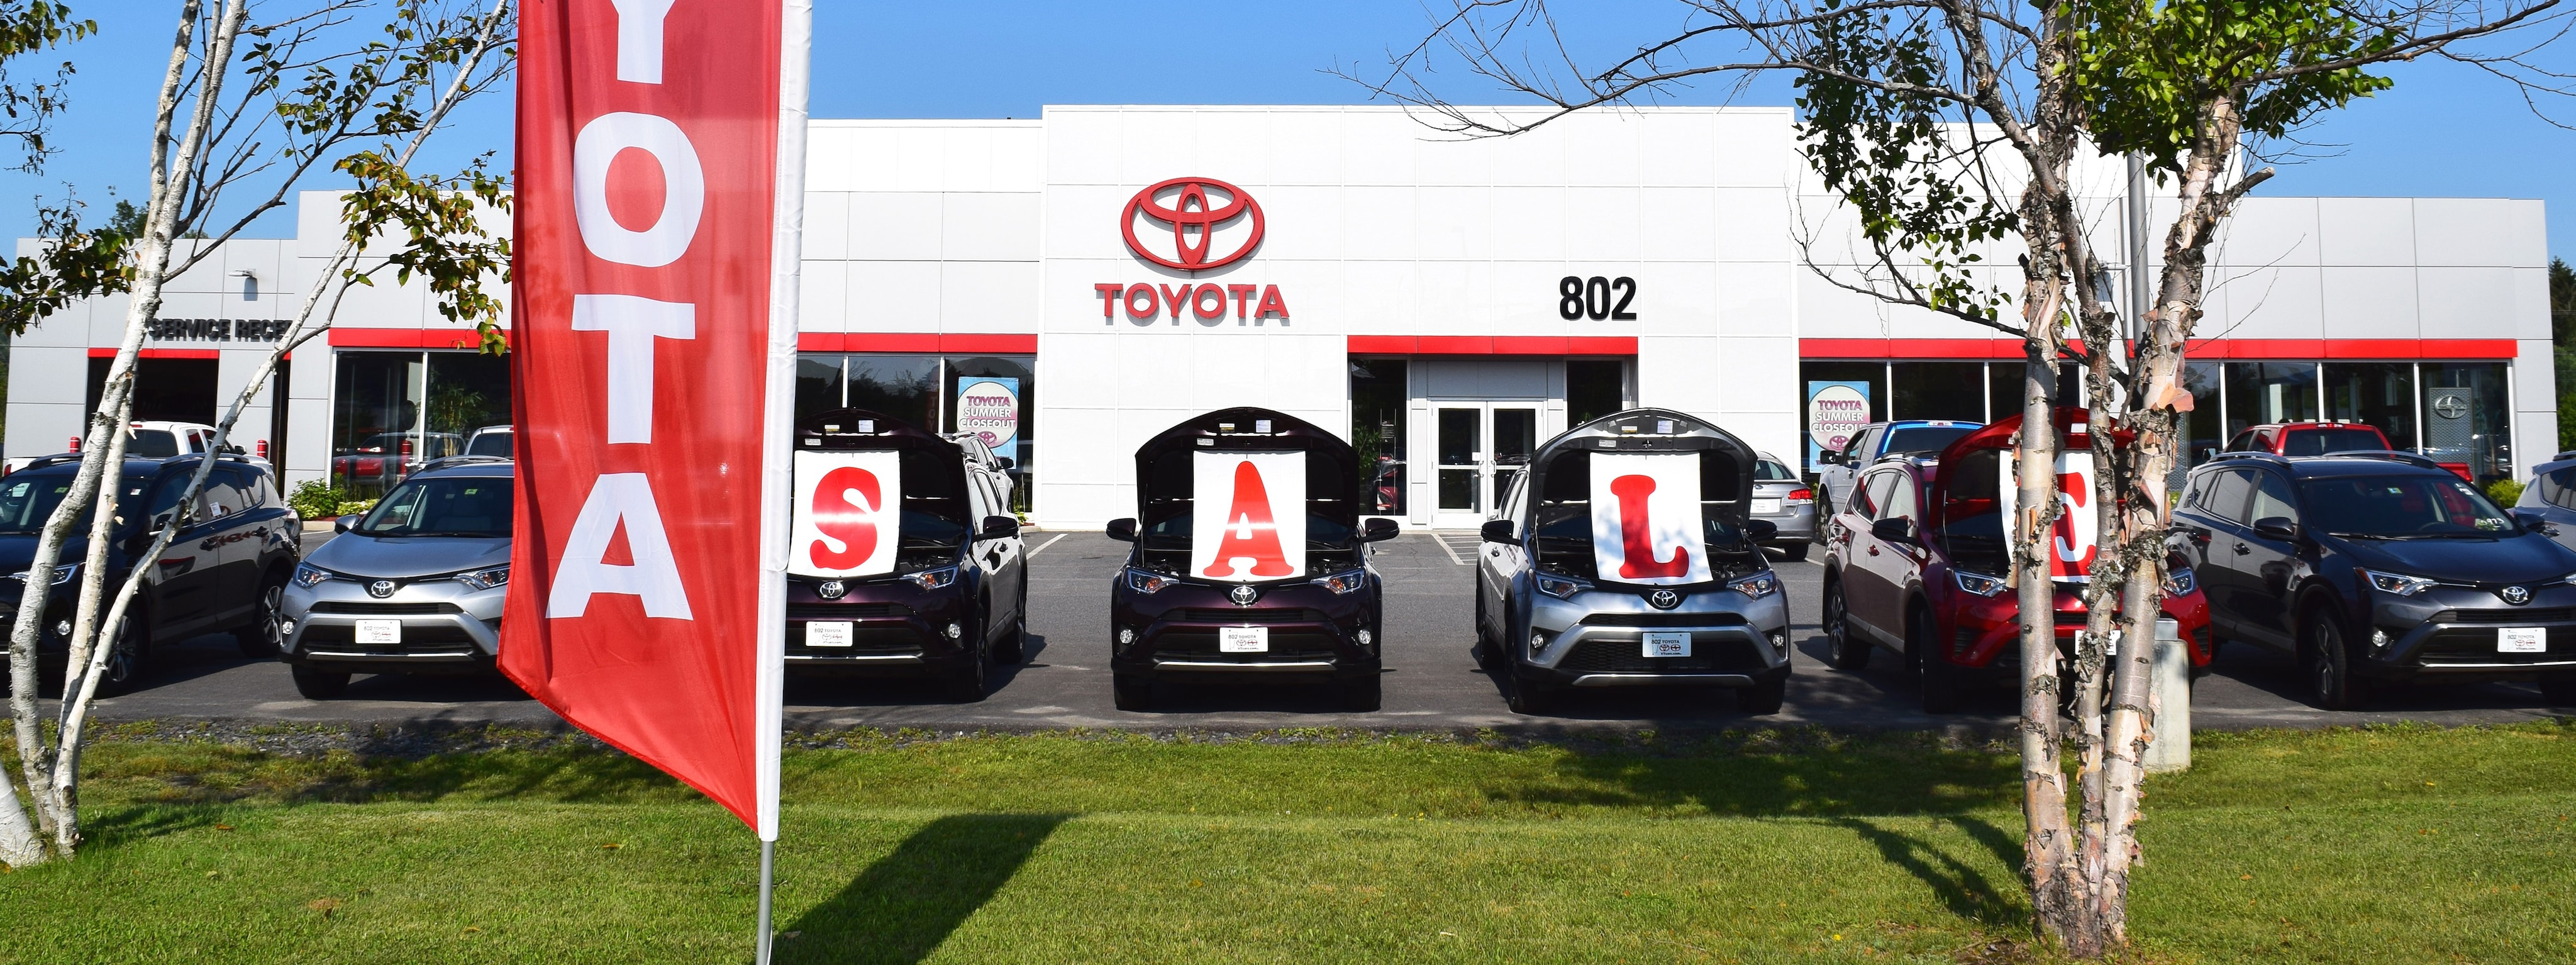 hours of operation holiday closures 802 toyota